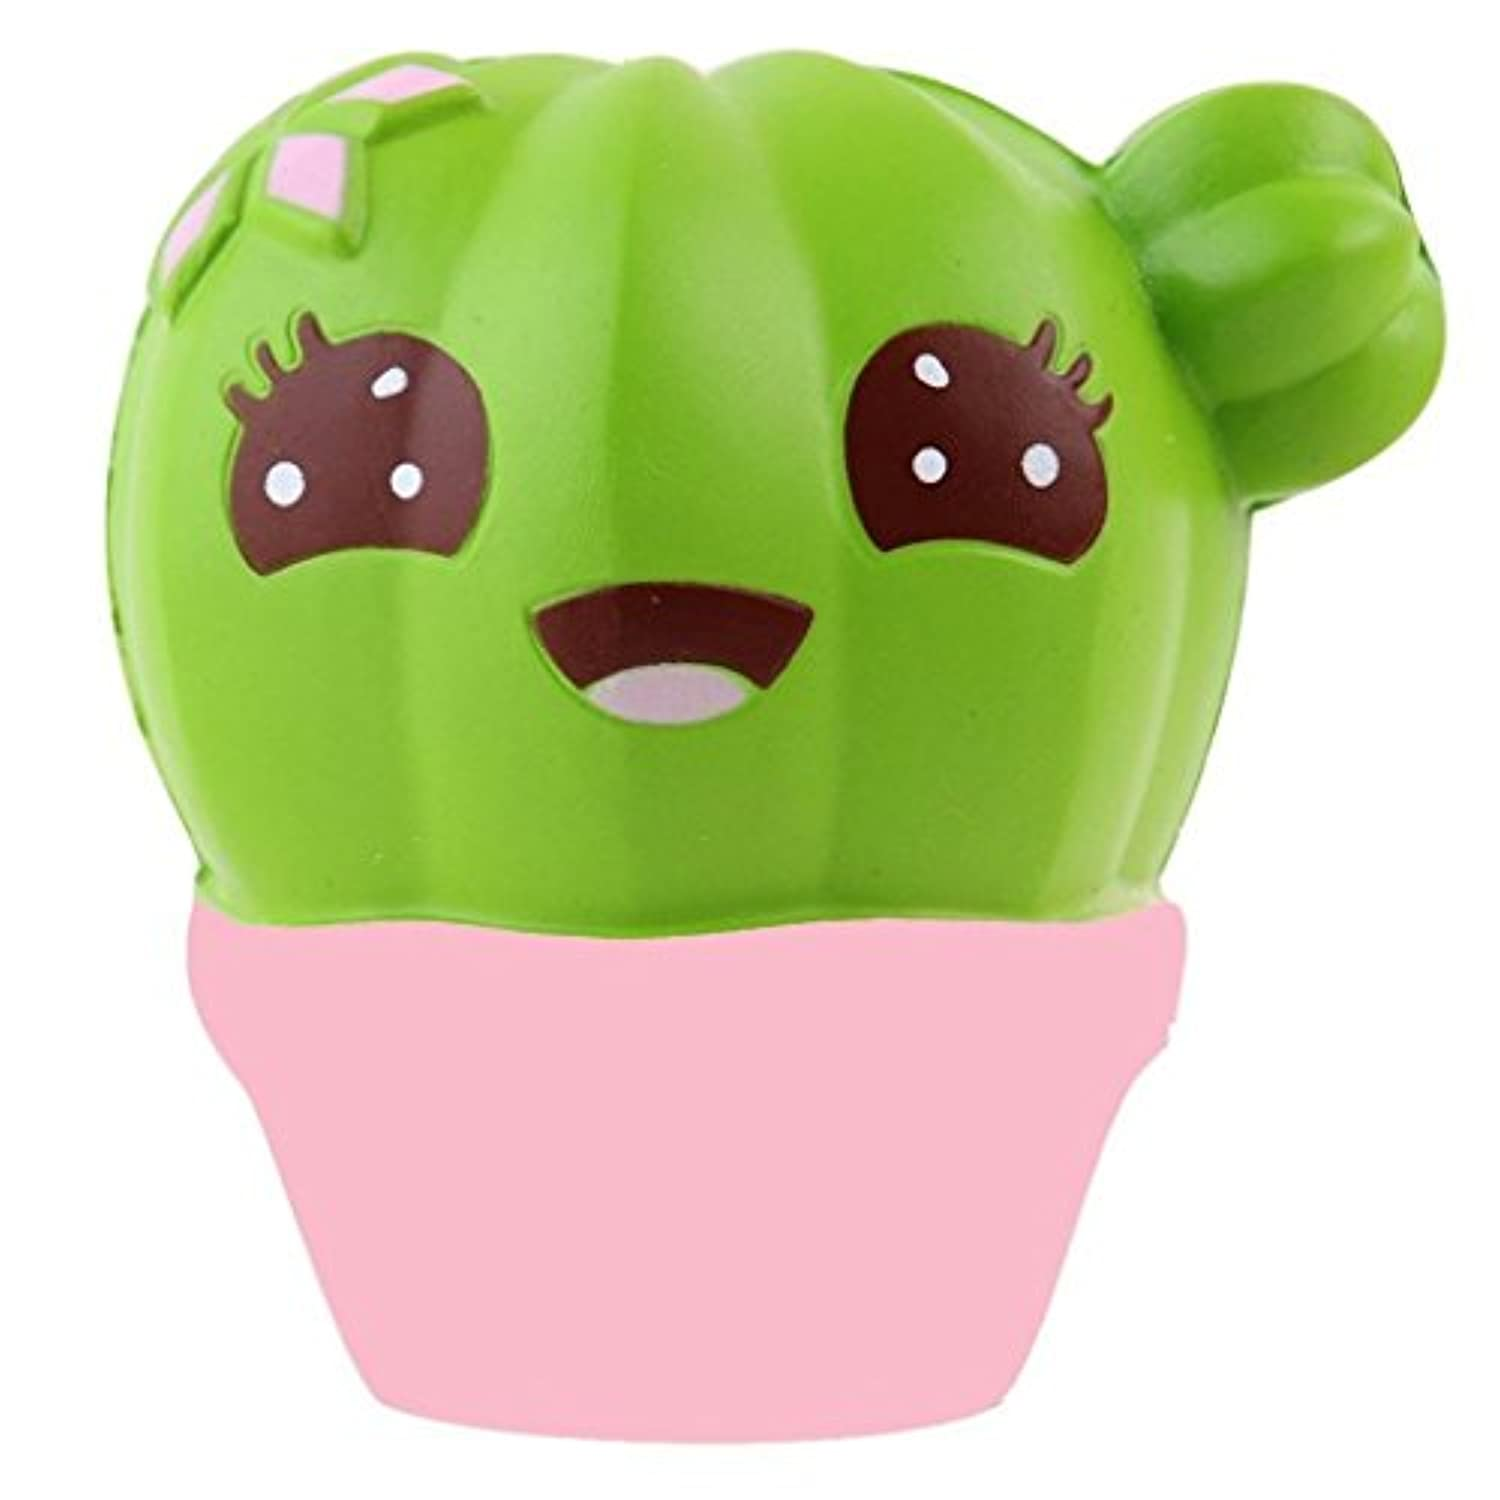 ouniceソフト応力Reliever玩具、サボテンクリーム香りつきSquishy Slow Rising Squeeze Toys Cure Gifts forキッズ大人